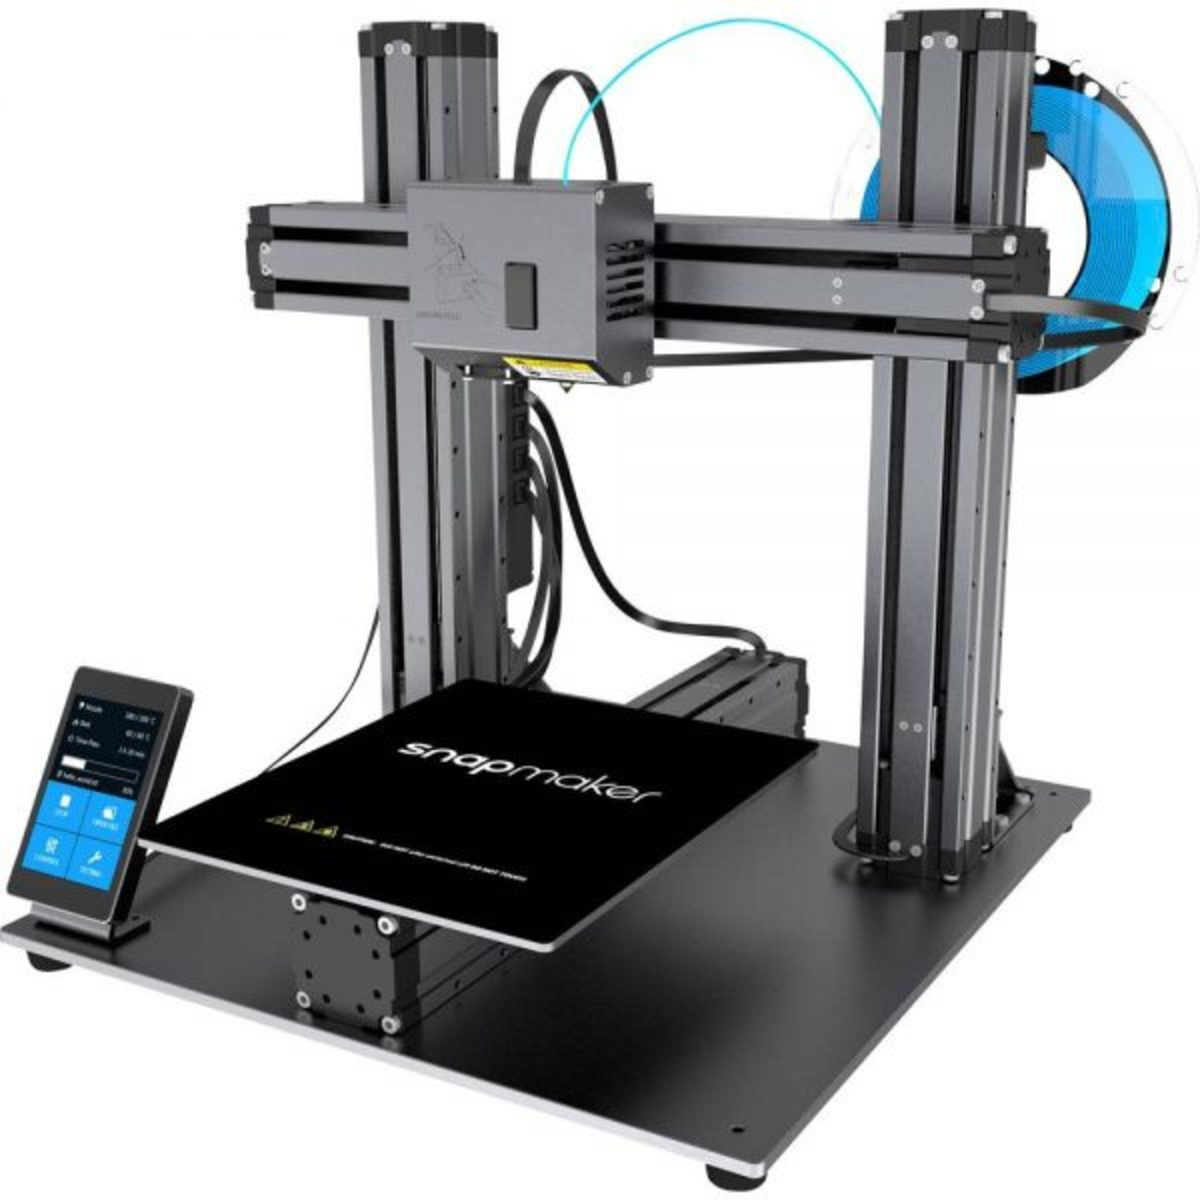 Will 3d printers finally jump into the mass market?